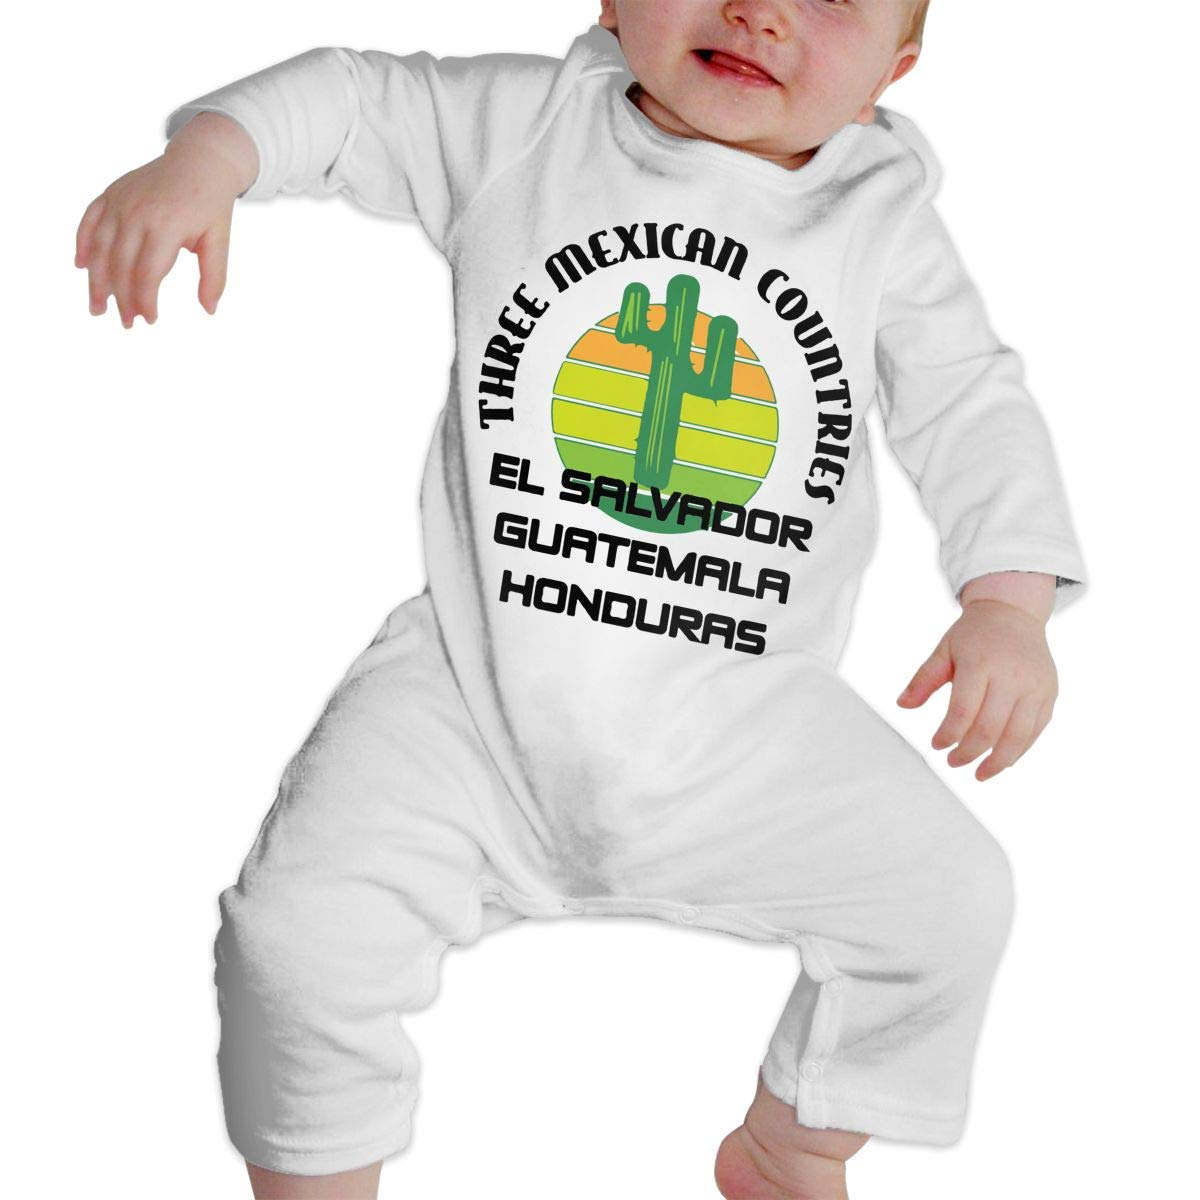 LBJQ8 Three Mexican Countries Infant Baby Girl Boys Organic Cotton Romper Jumpsuit Bodysuit